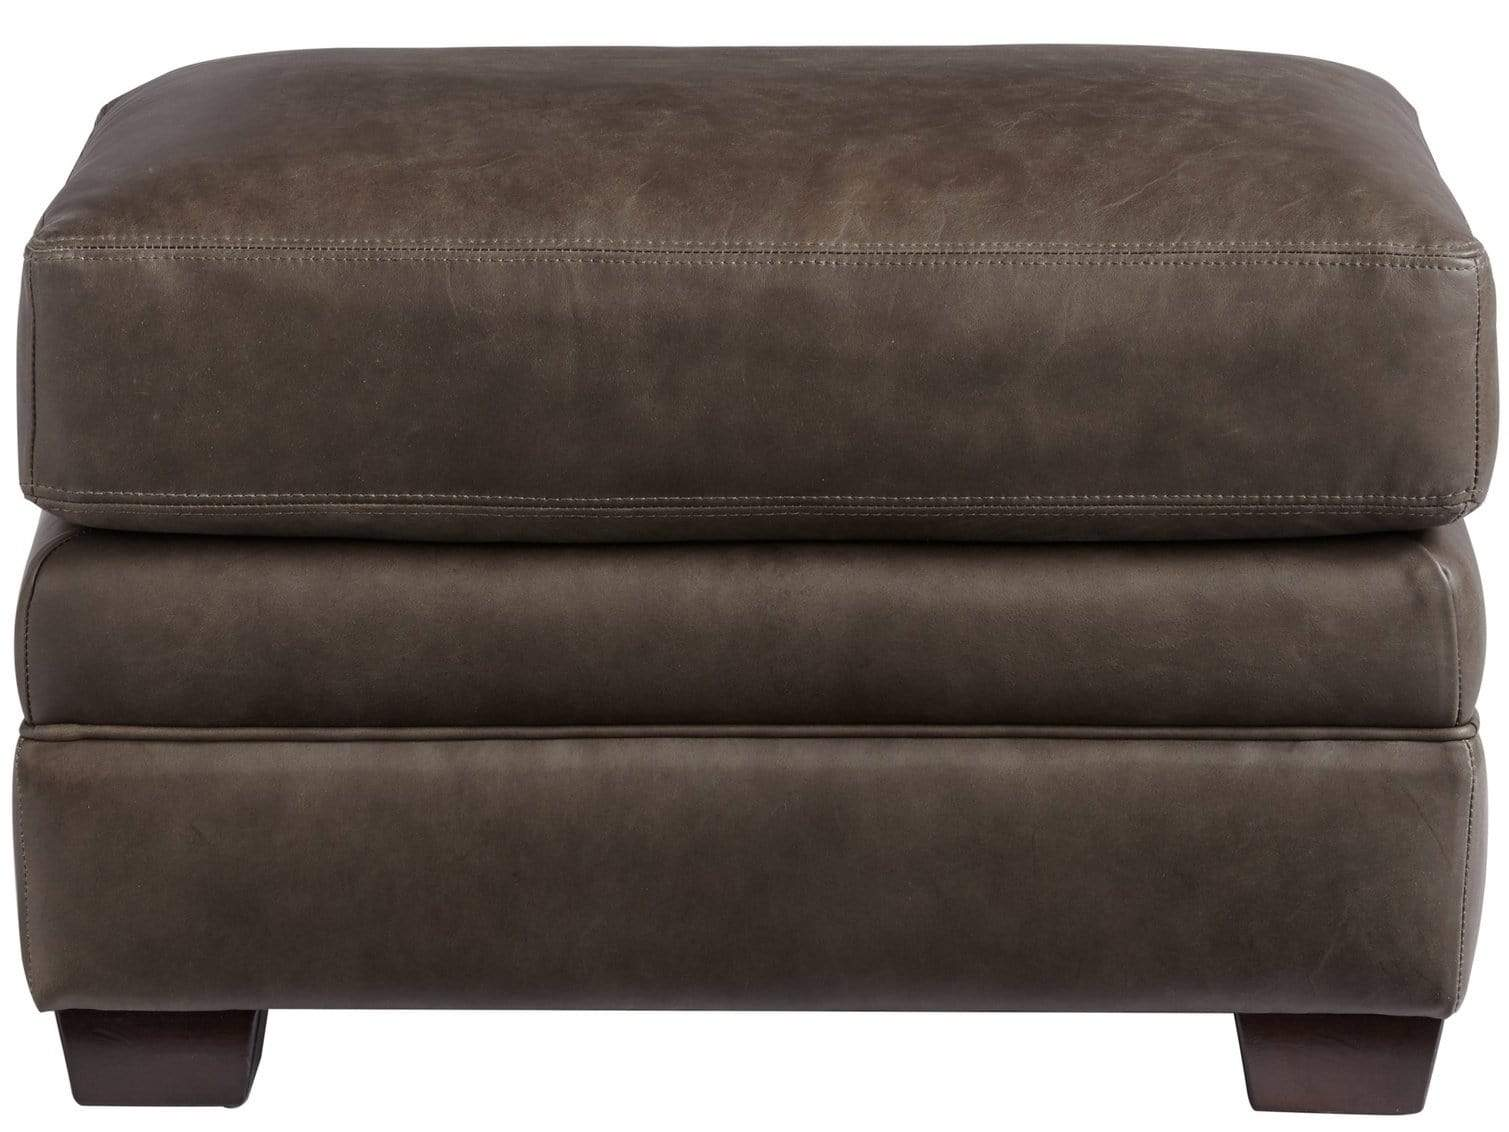 Alchemy Living Alchemy Living Leather - Olly Ottoman - Brown 682554-901-5